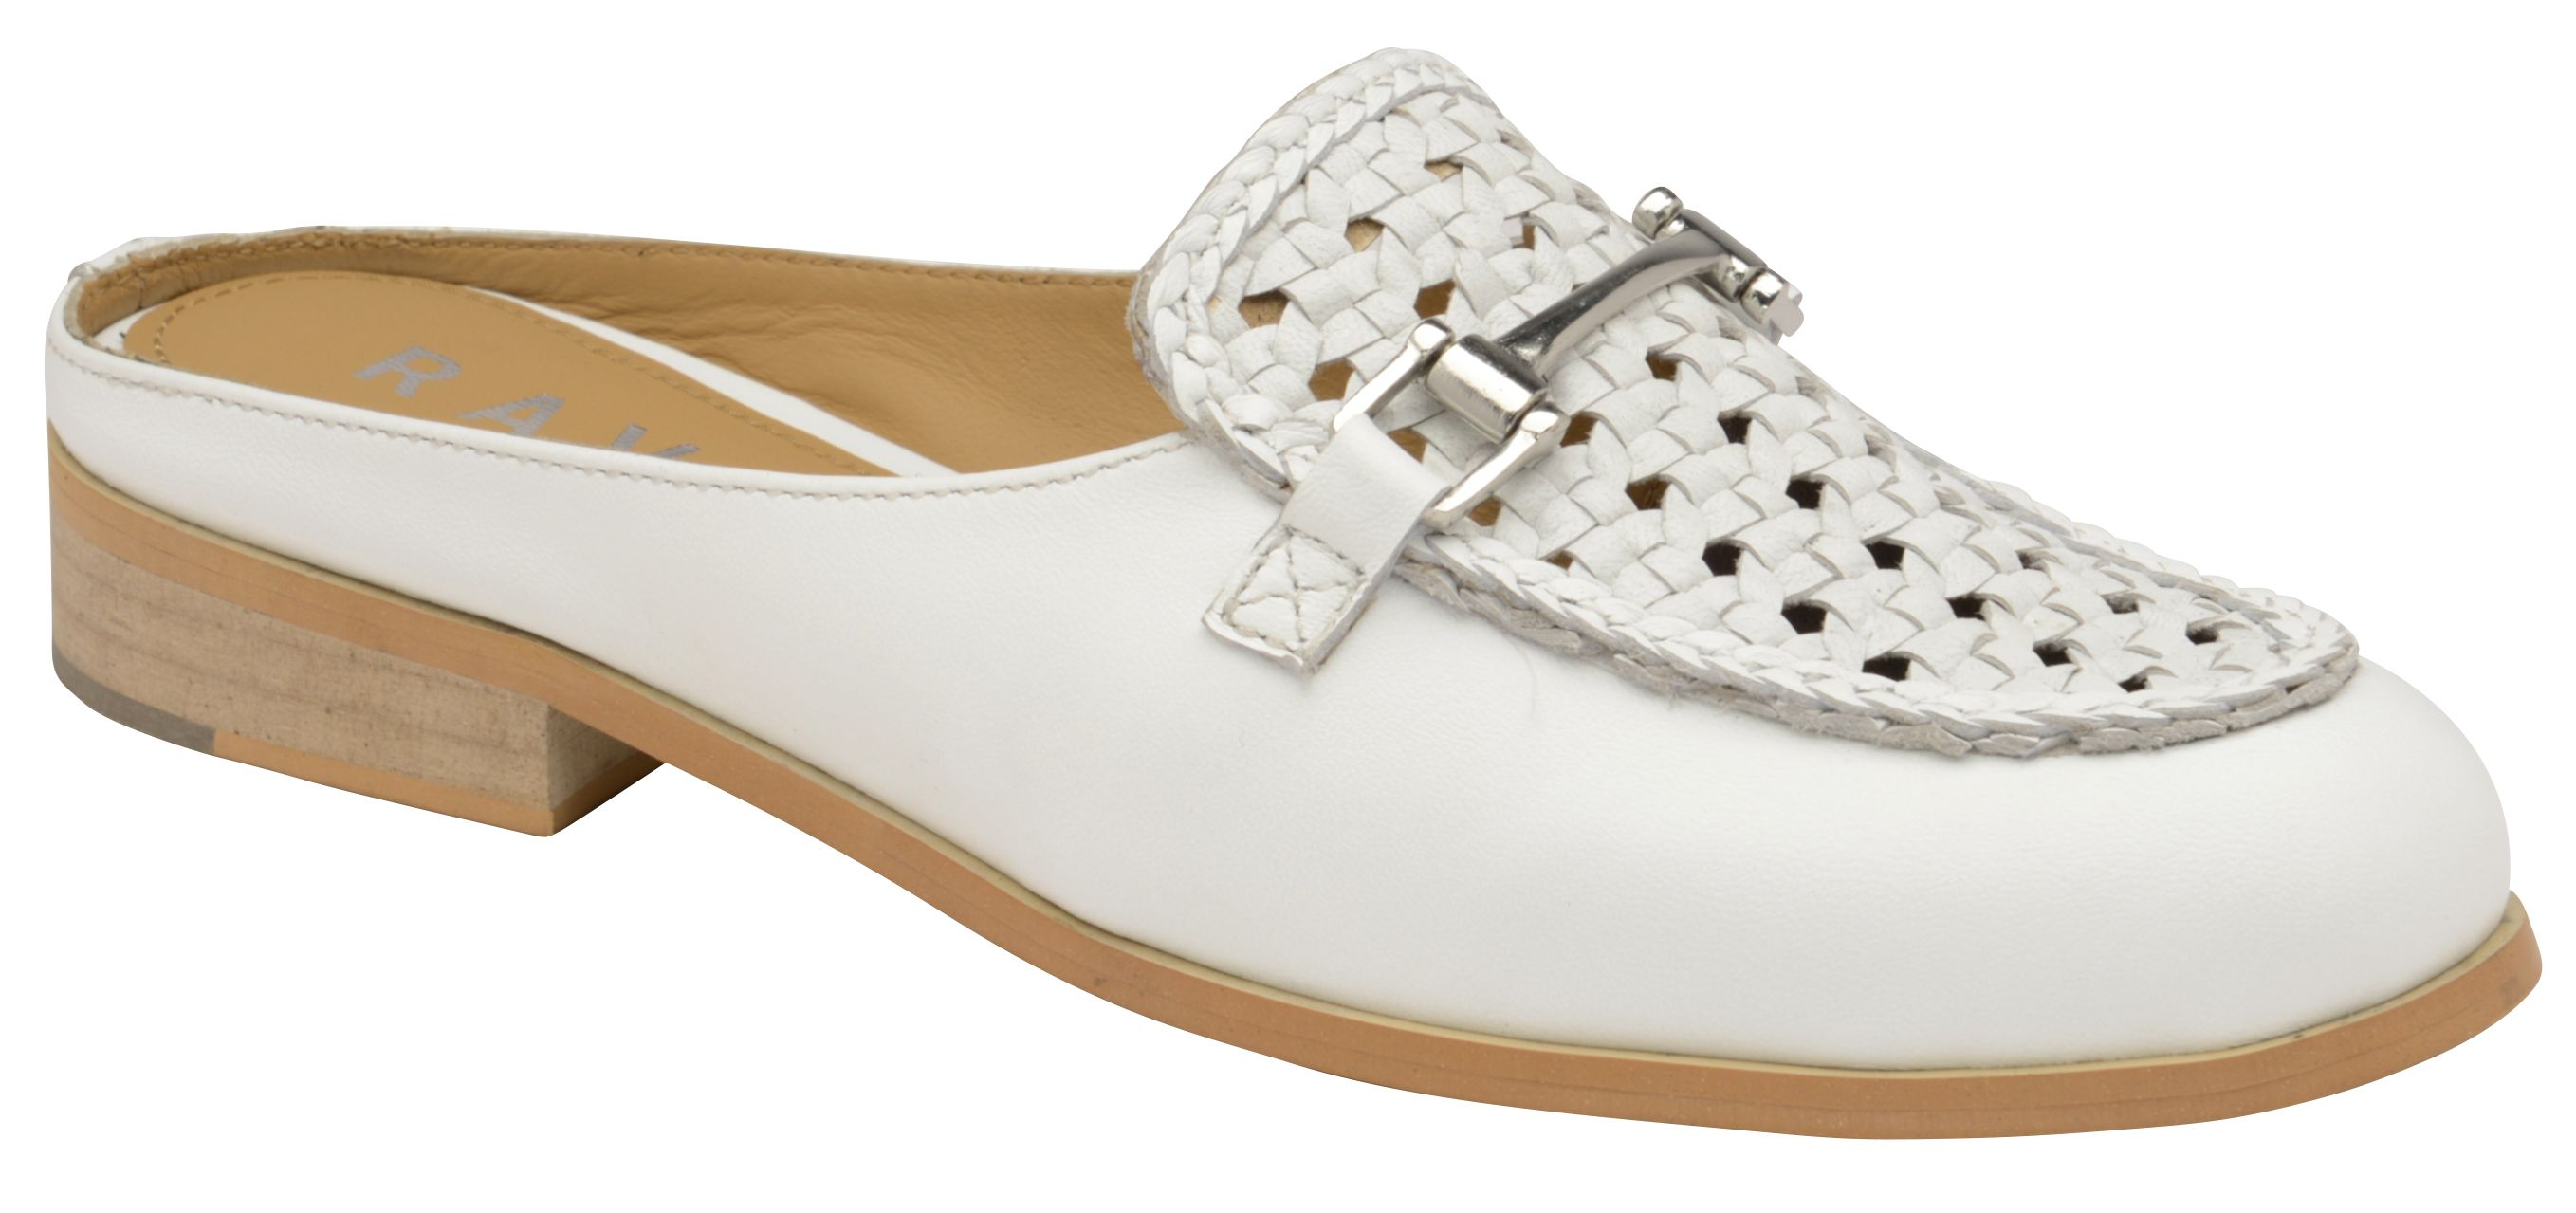 Ravel Axis Backless Loafers, White